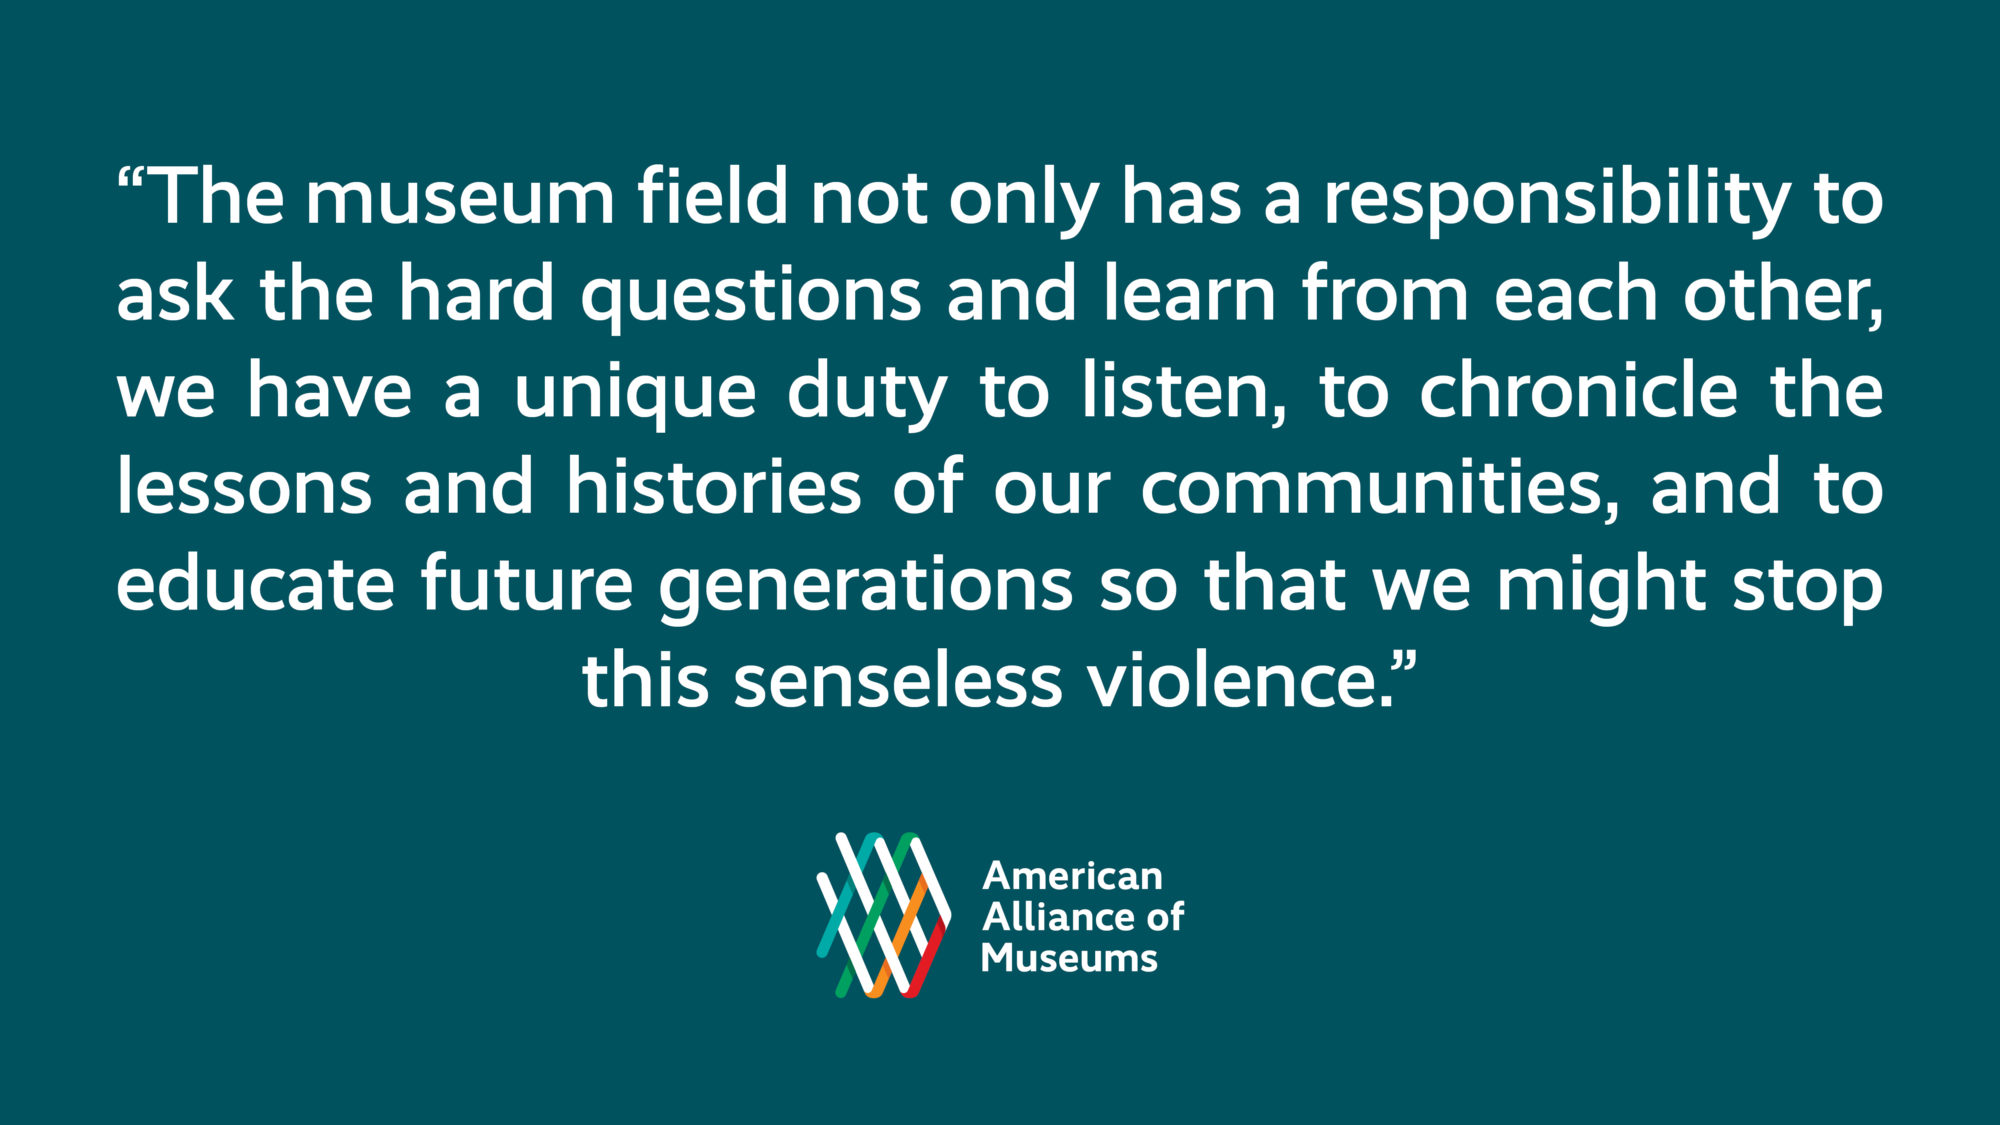 "A graphic with a pull quote from the remarks, ""The museum field not only has a responsibility to ask the hard questions and learn from each other; we have a unique duty to listen, to chronicle the lessons and histories of our communities, and to educate future generations so that we might stop this senseless violence"" and the AAM logo."